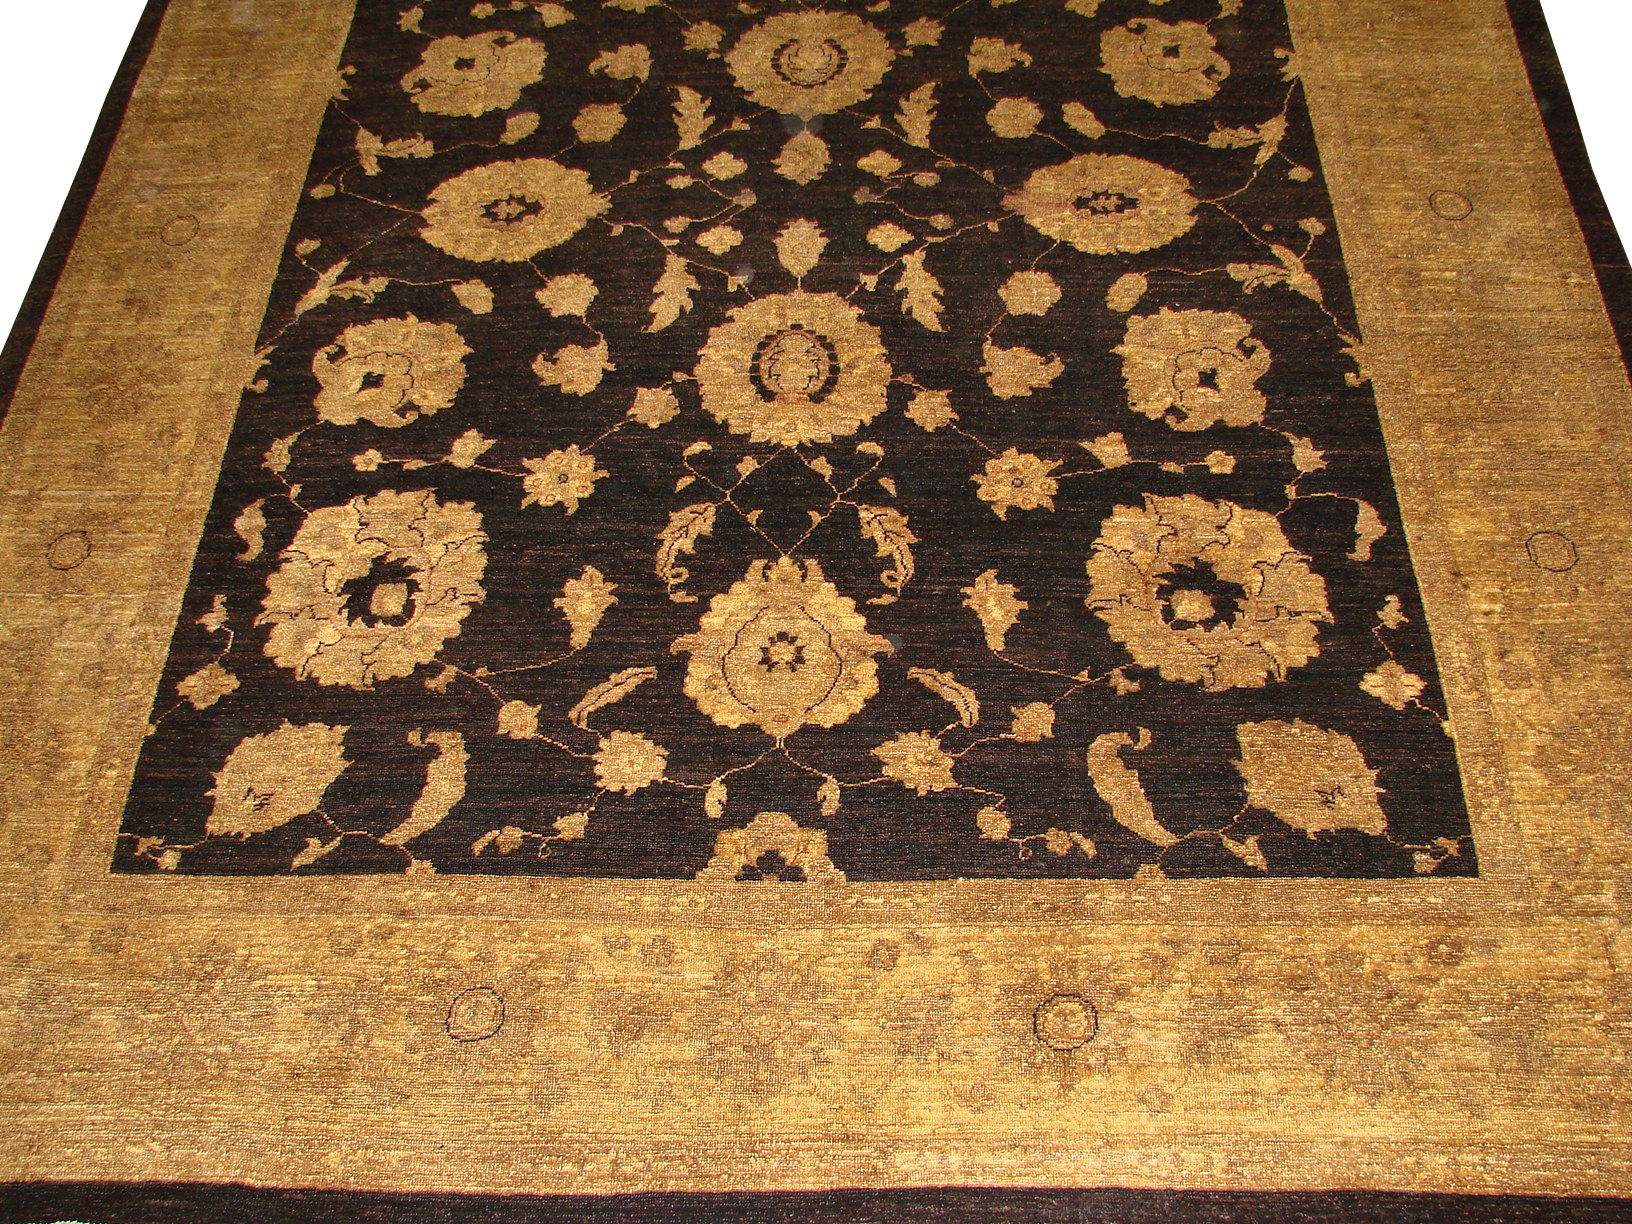 8x10 Peshawar Hand Knotted Wool Area Rug - MR9519